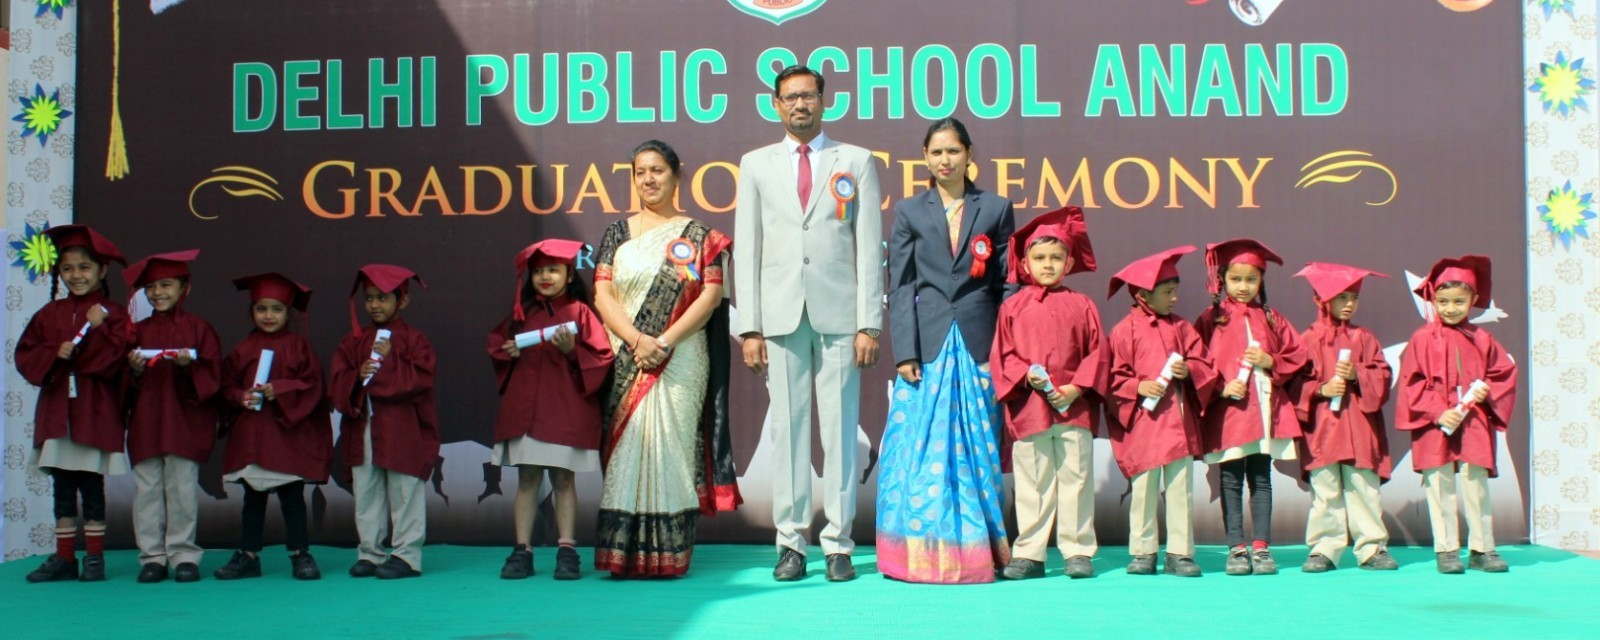 Welcome To Dps Anand From The Promoters Of Delhi Public School Vadodara Harni And Bharuch